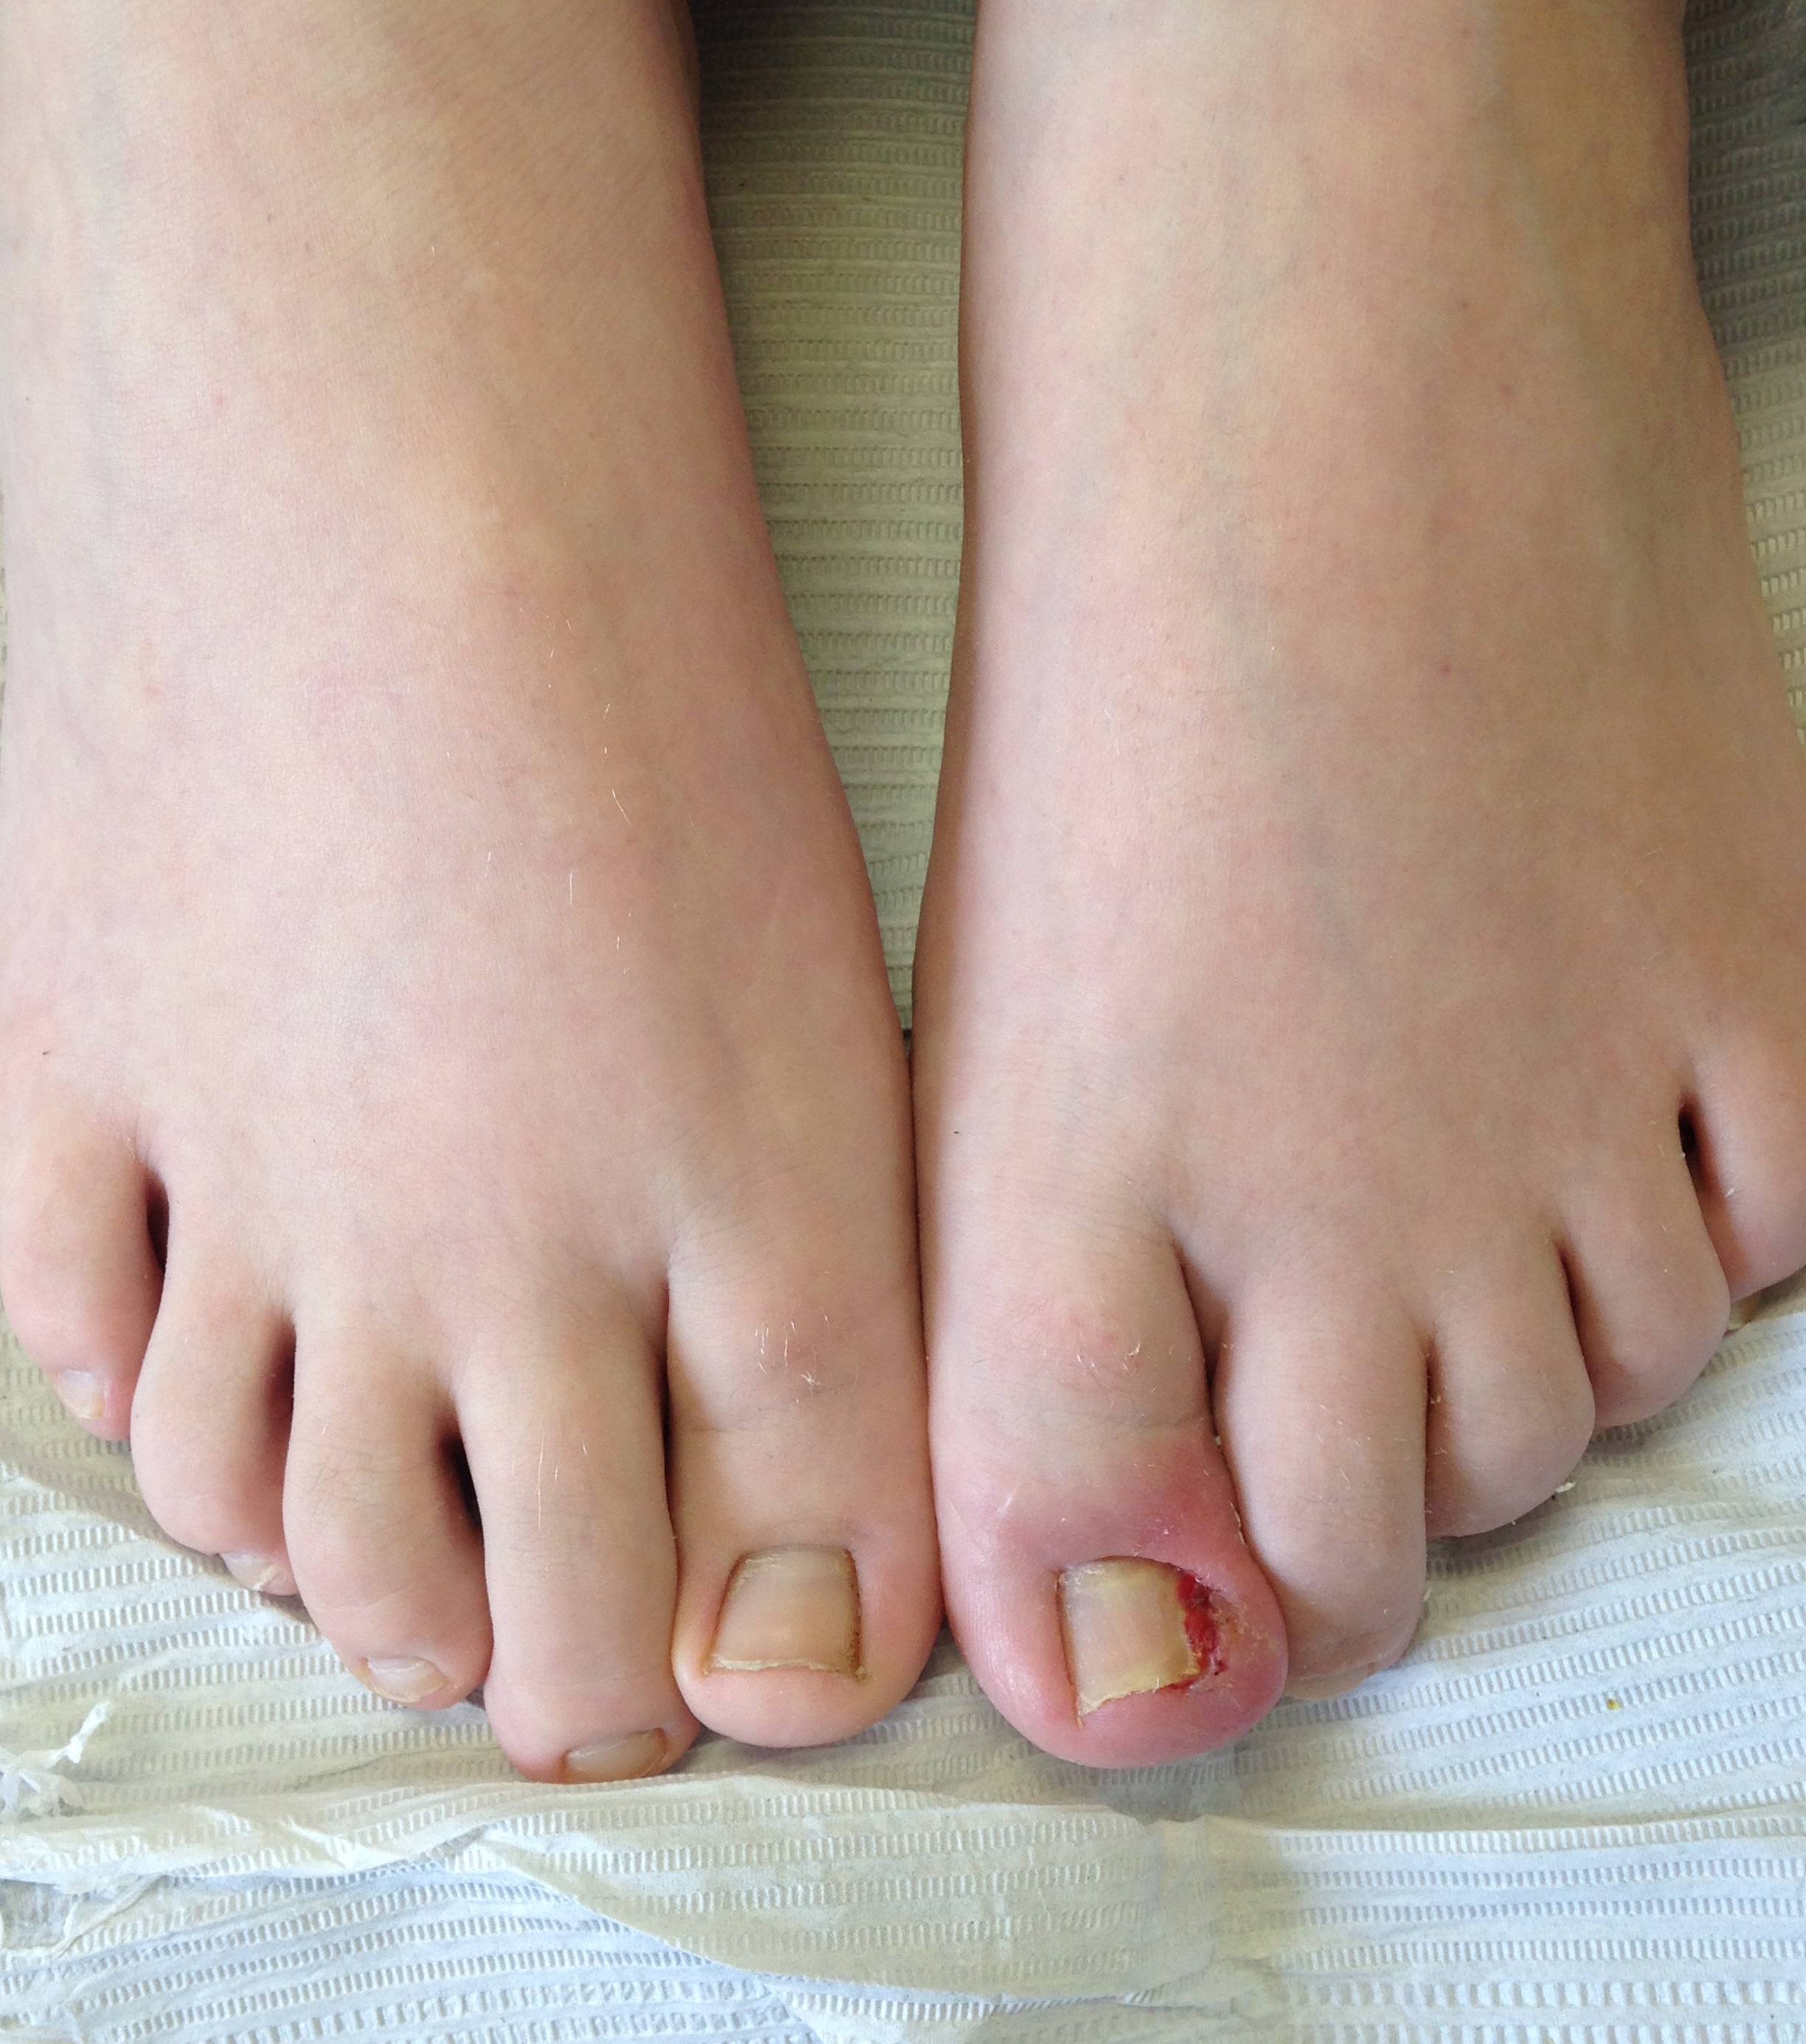 ingrown toenail and a simple procedure to alleviate